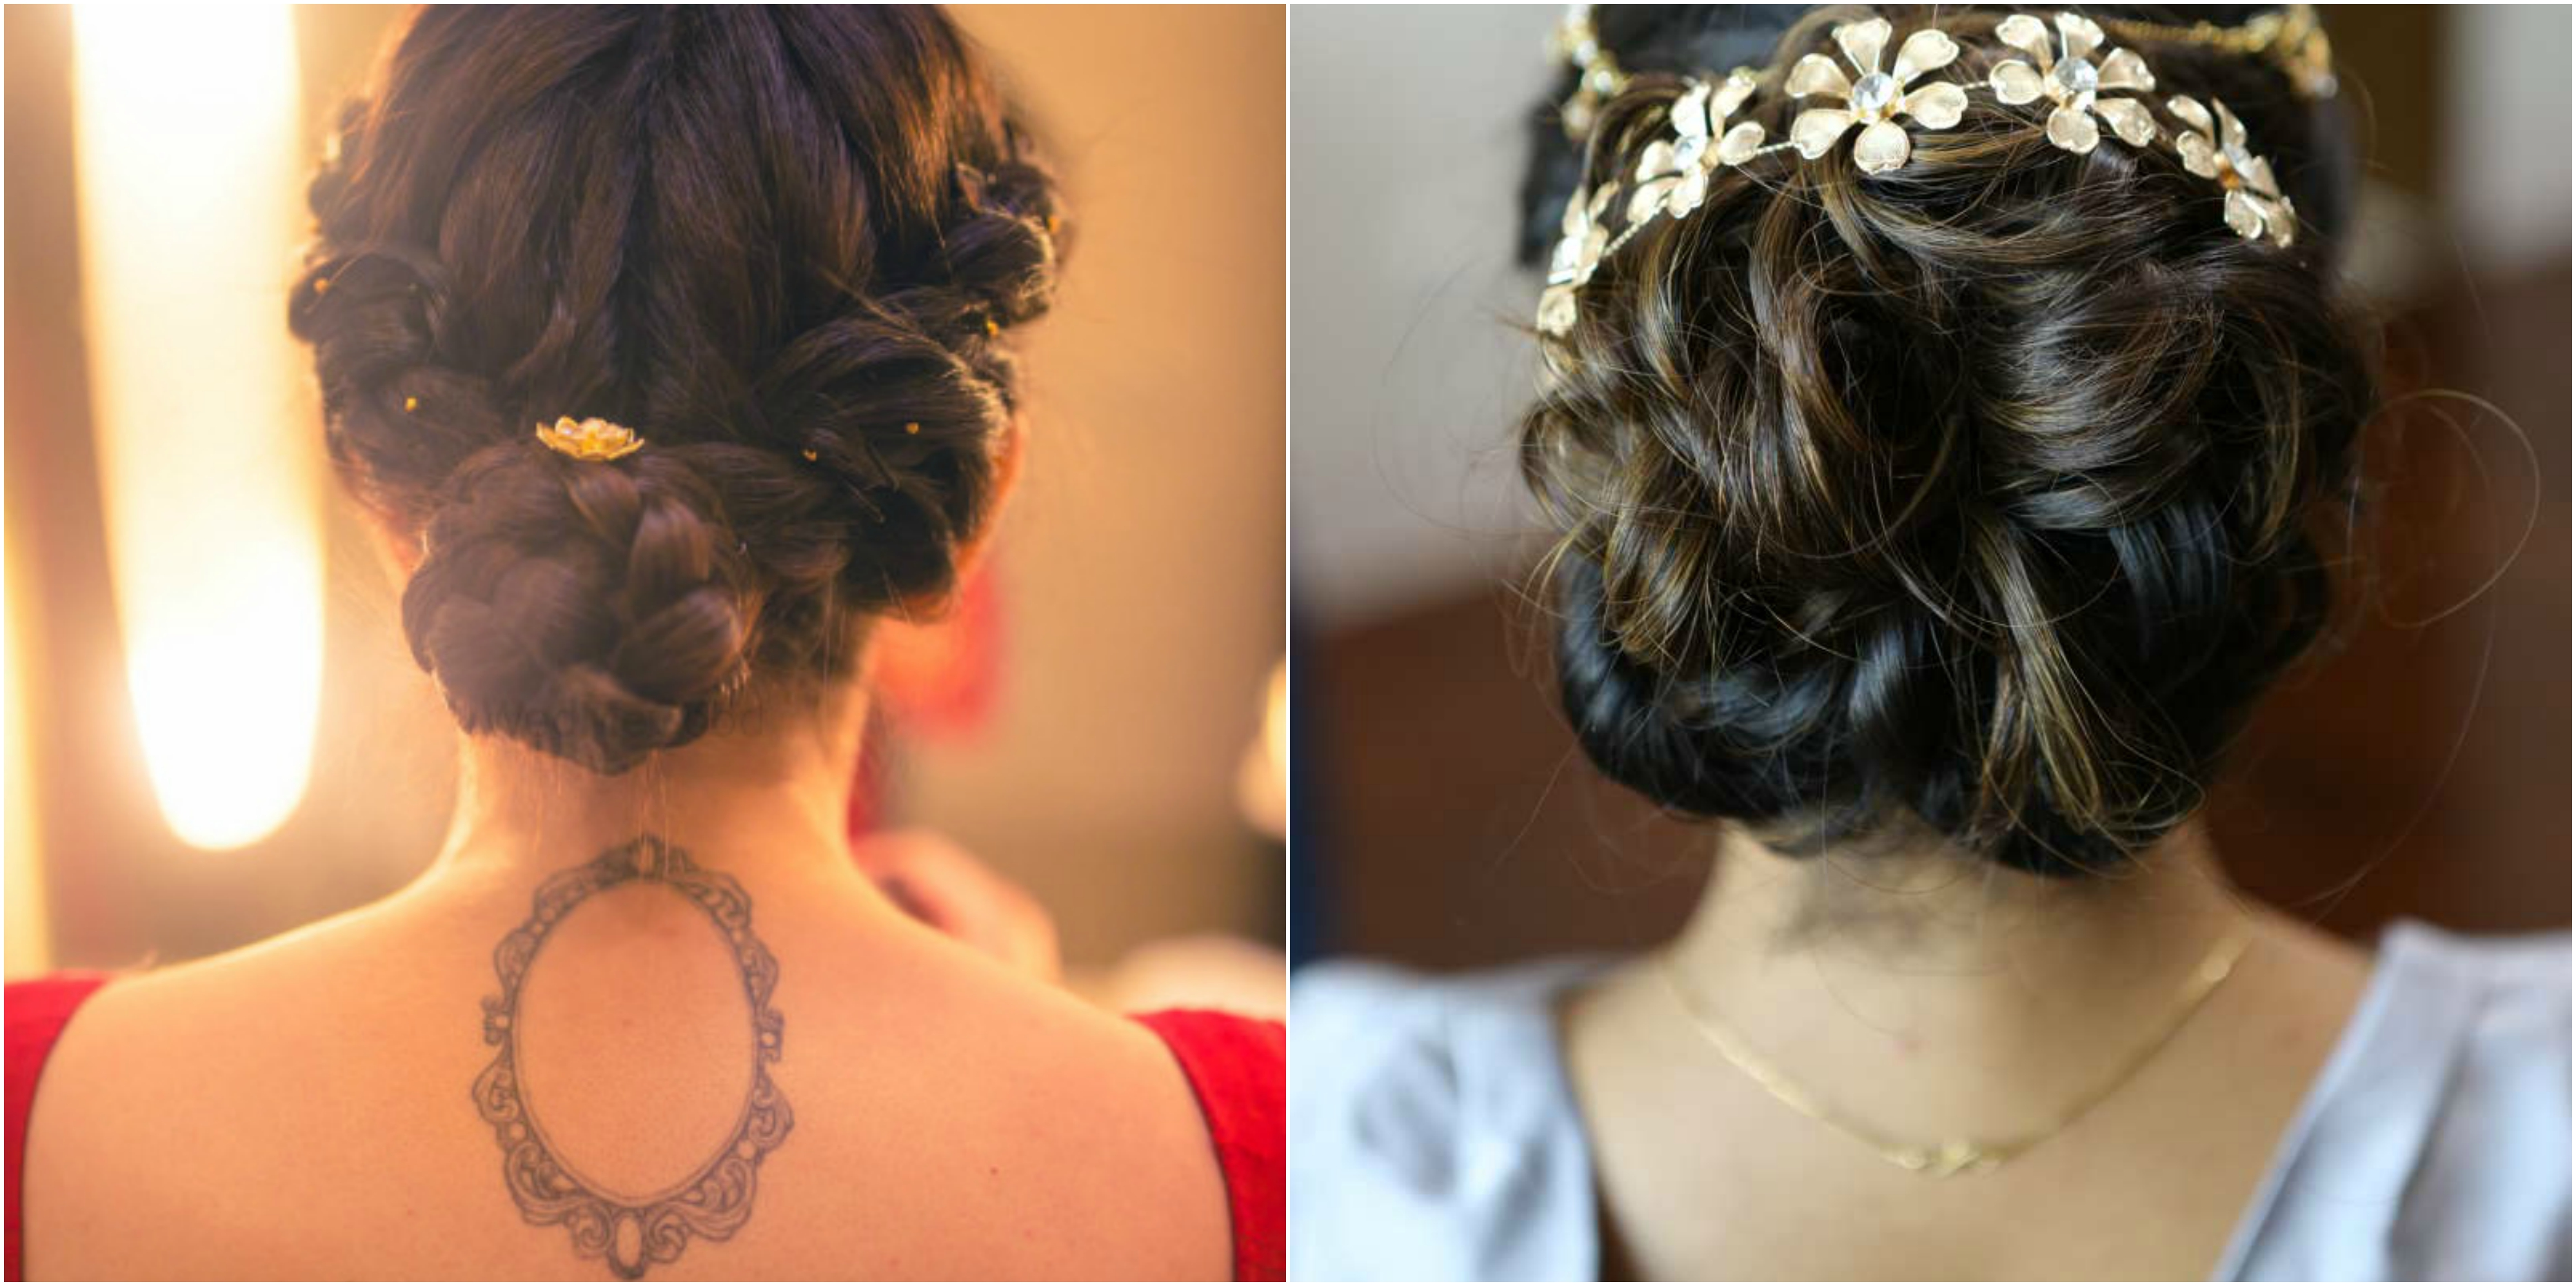 8 Drop Dead Updo Hairstyles For The Next Wedding You Attend